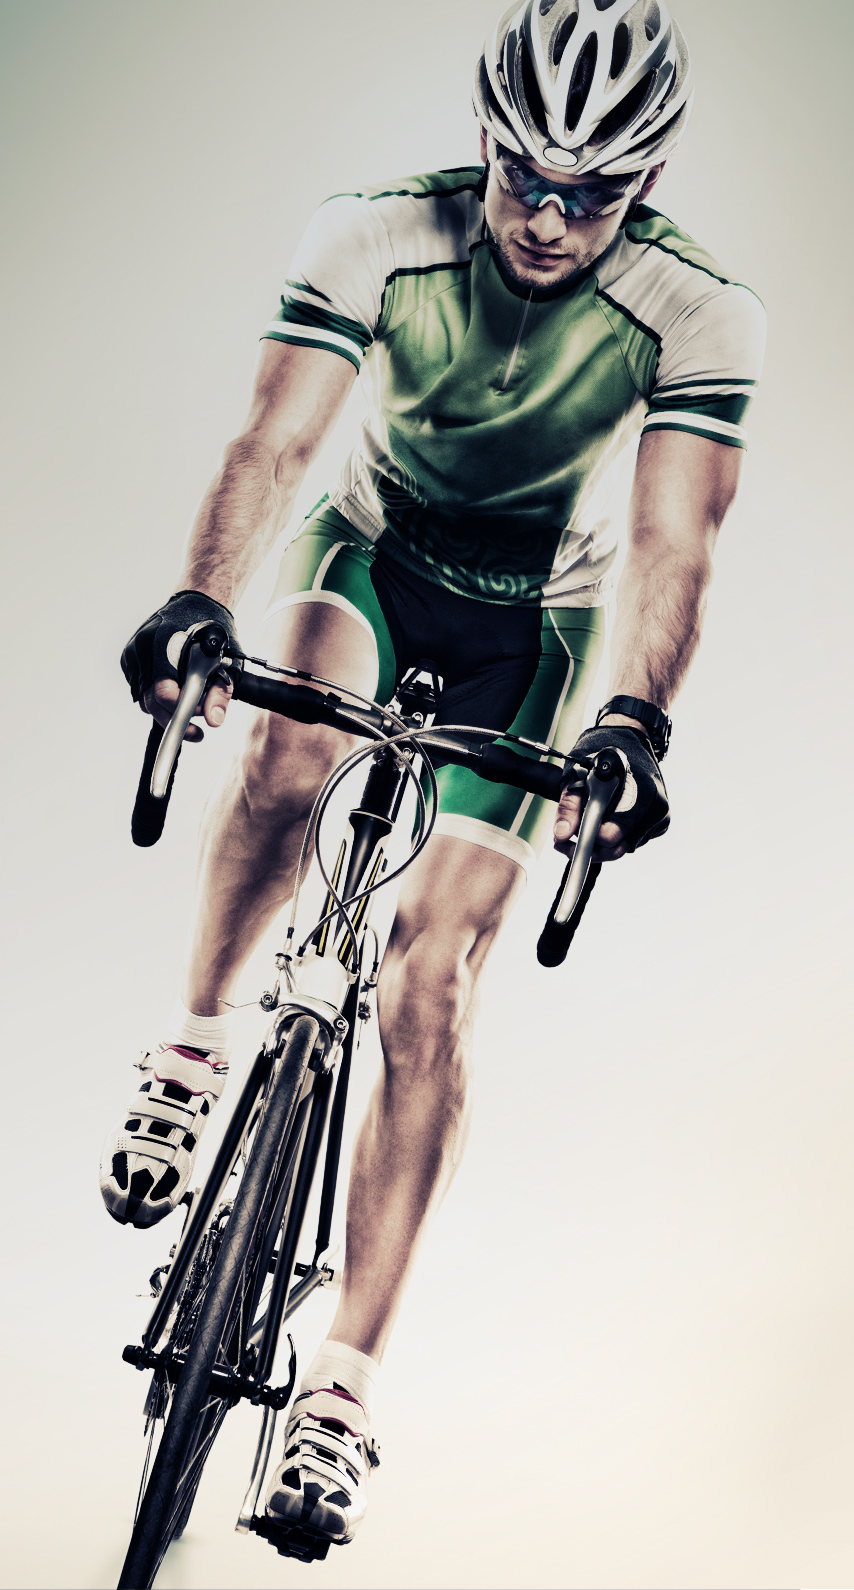 bicycles equipment and supplies, bicycle clothing